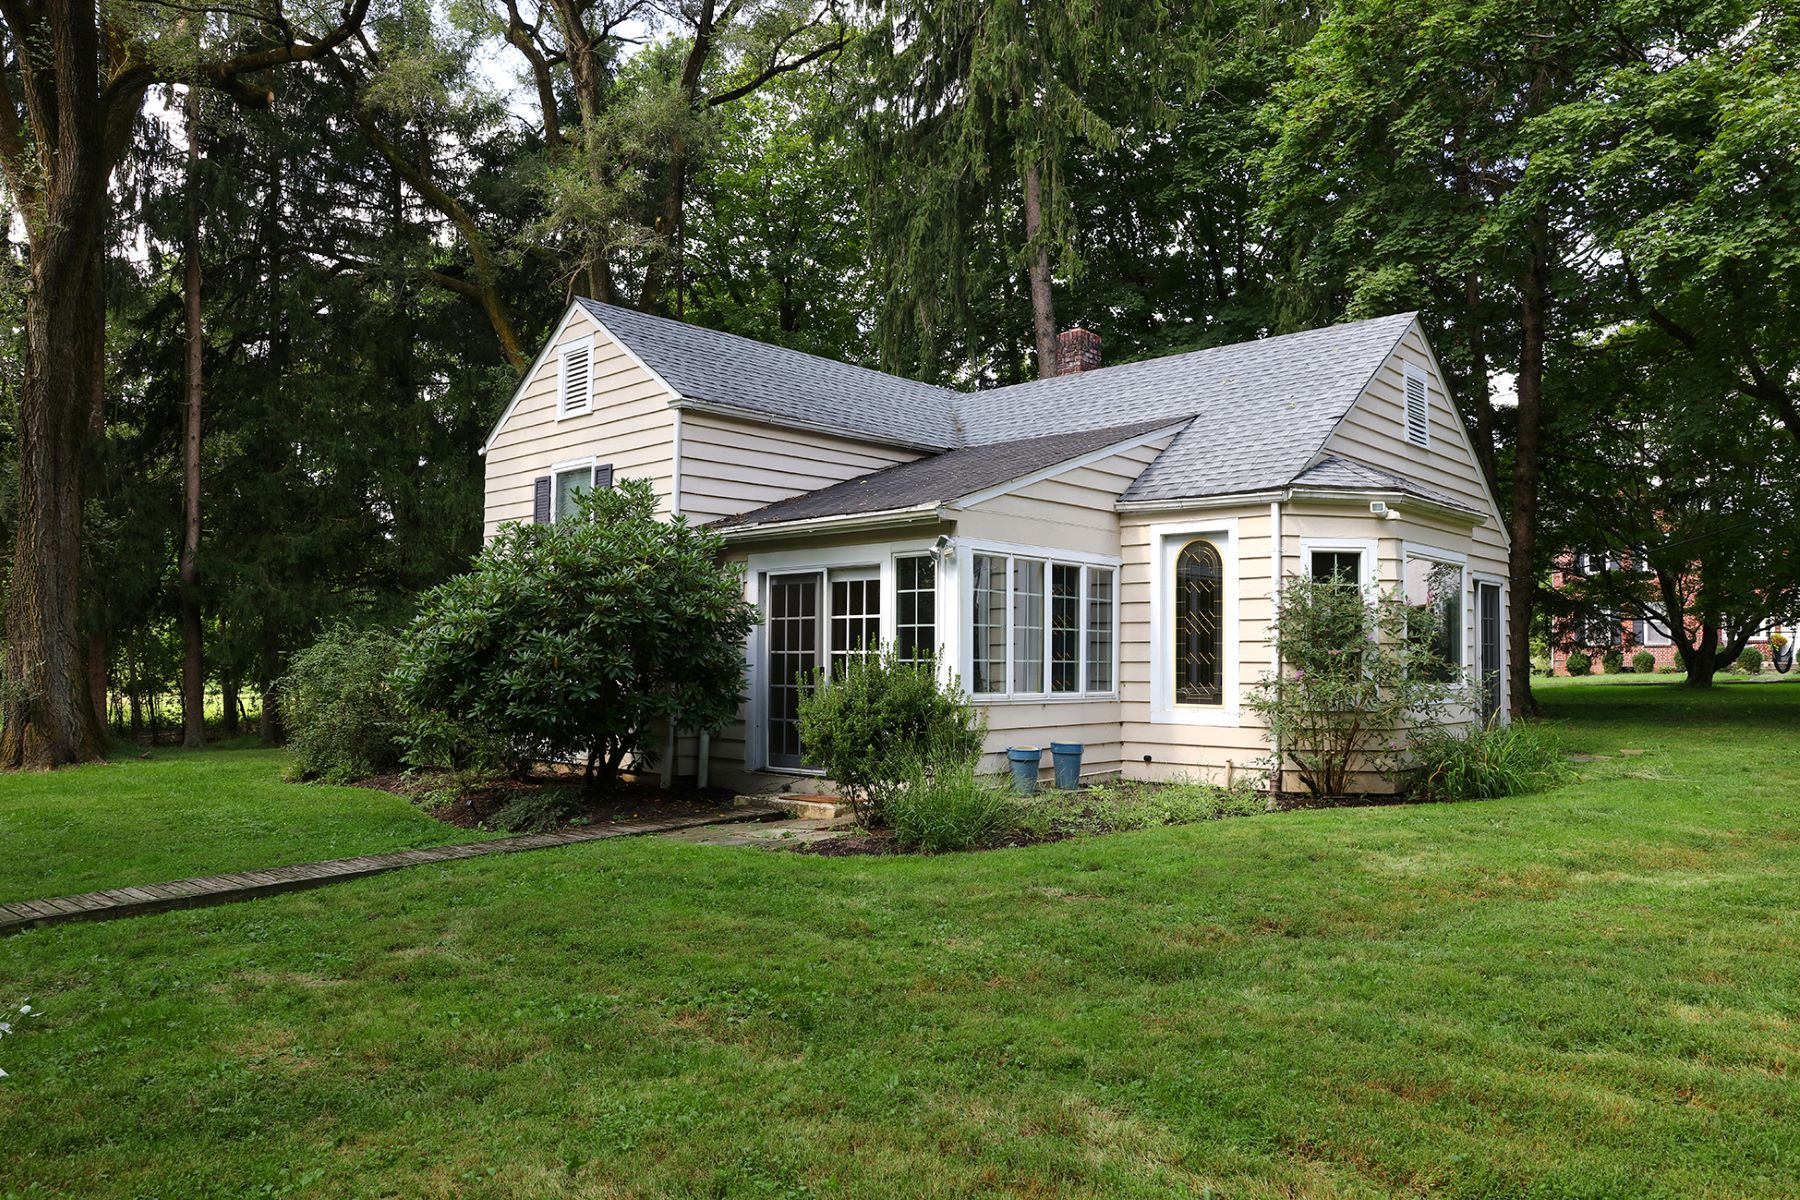 Single Family Home for Sale at Charming Country Cottage And Mini Farm 107 Hopewell Wertsville Road, Hopewell, New Jersey 08525 United States